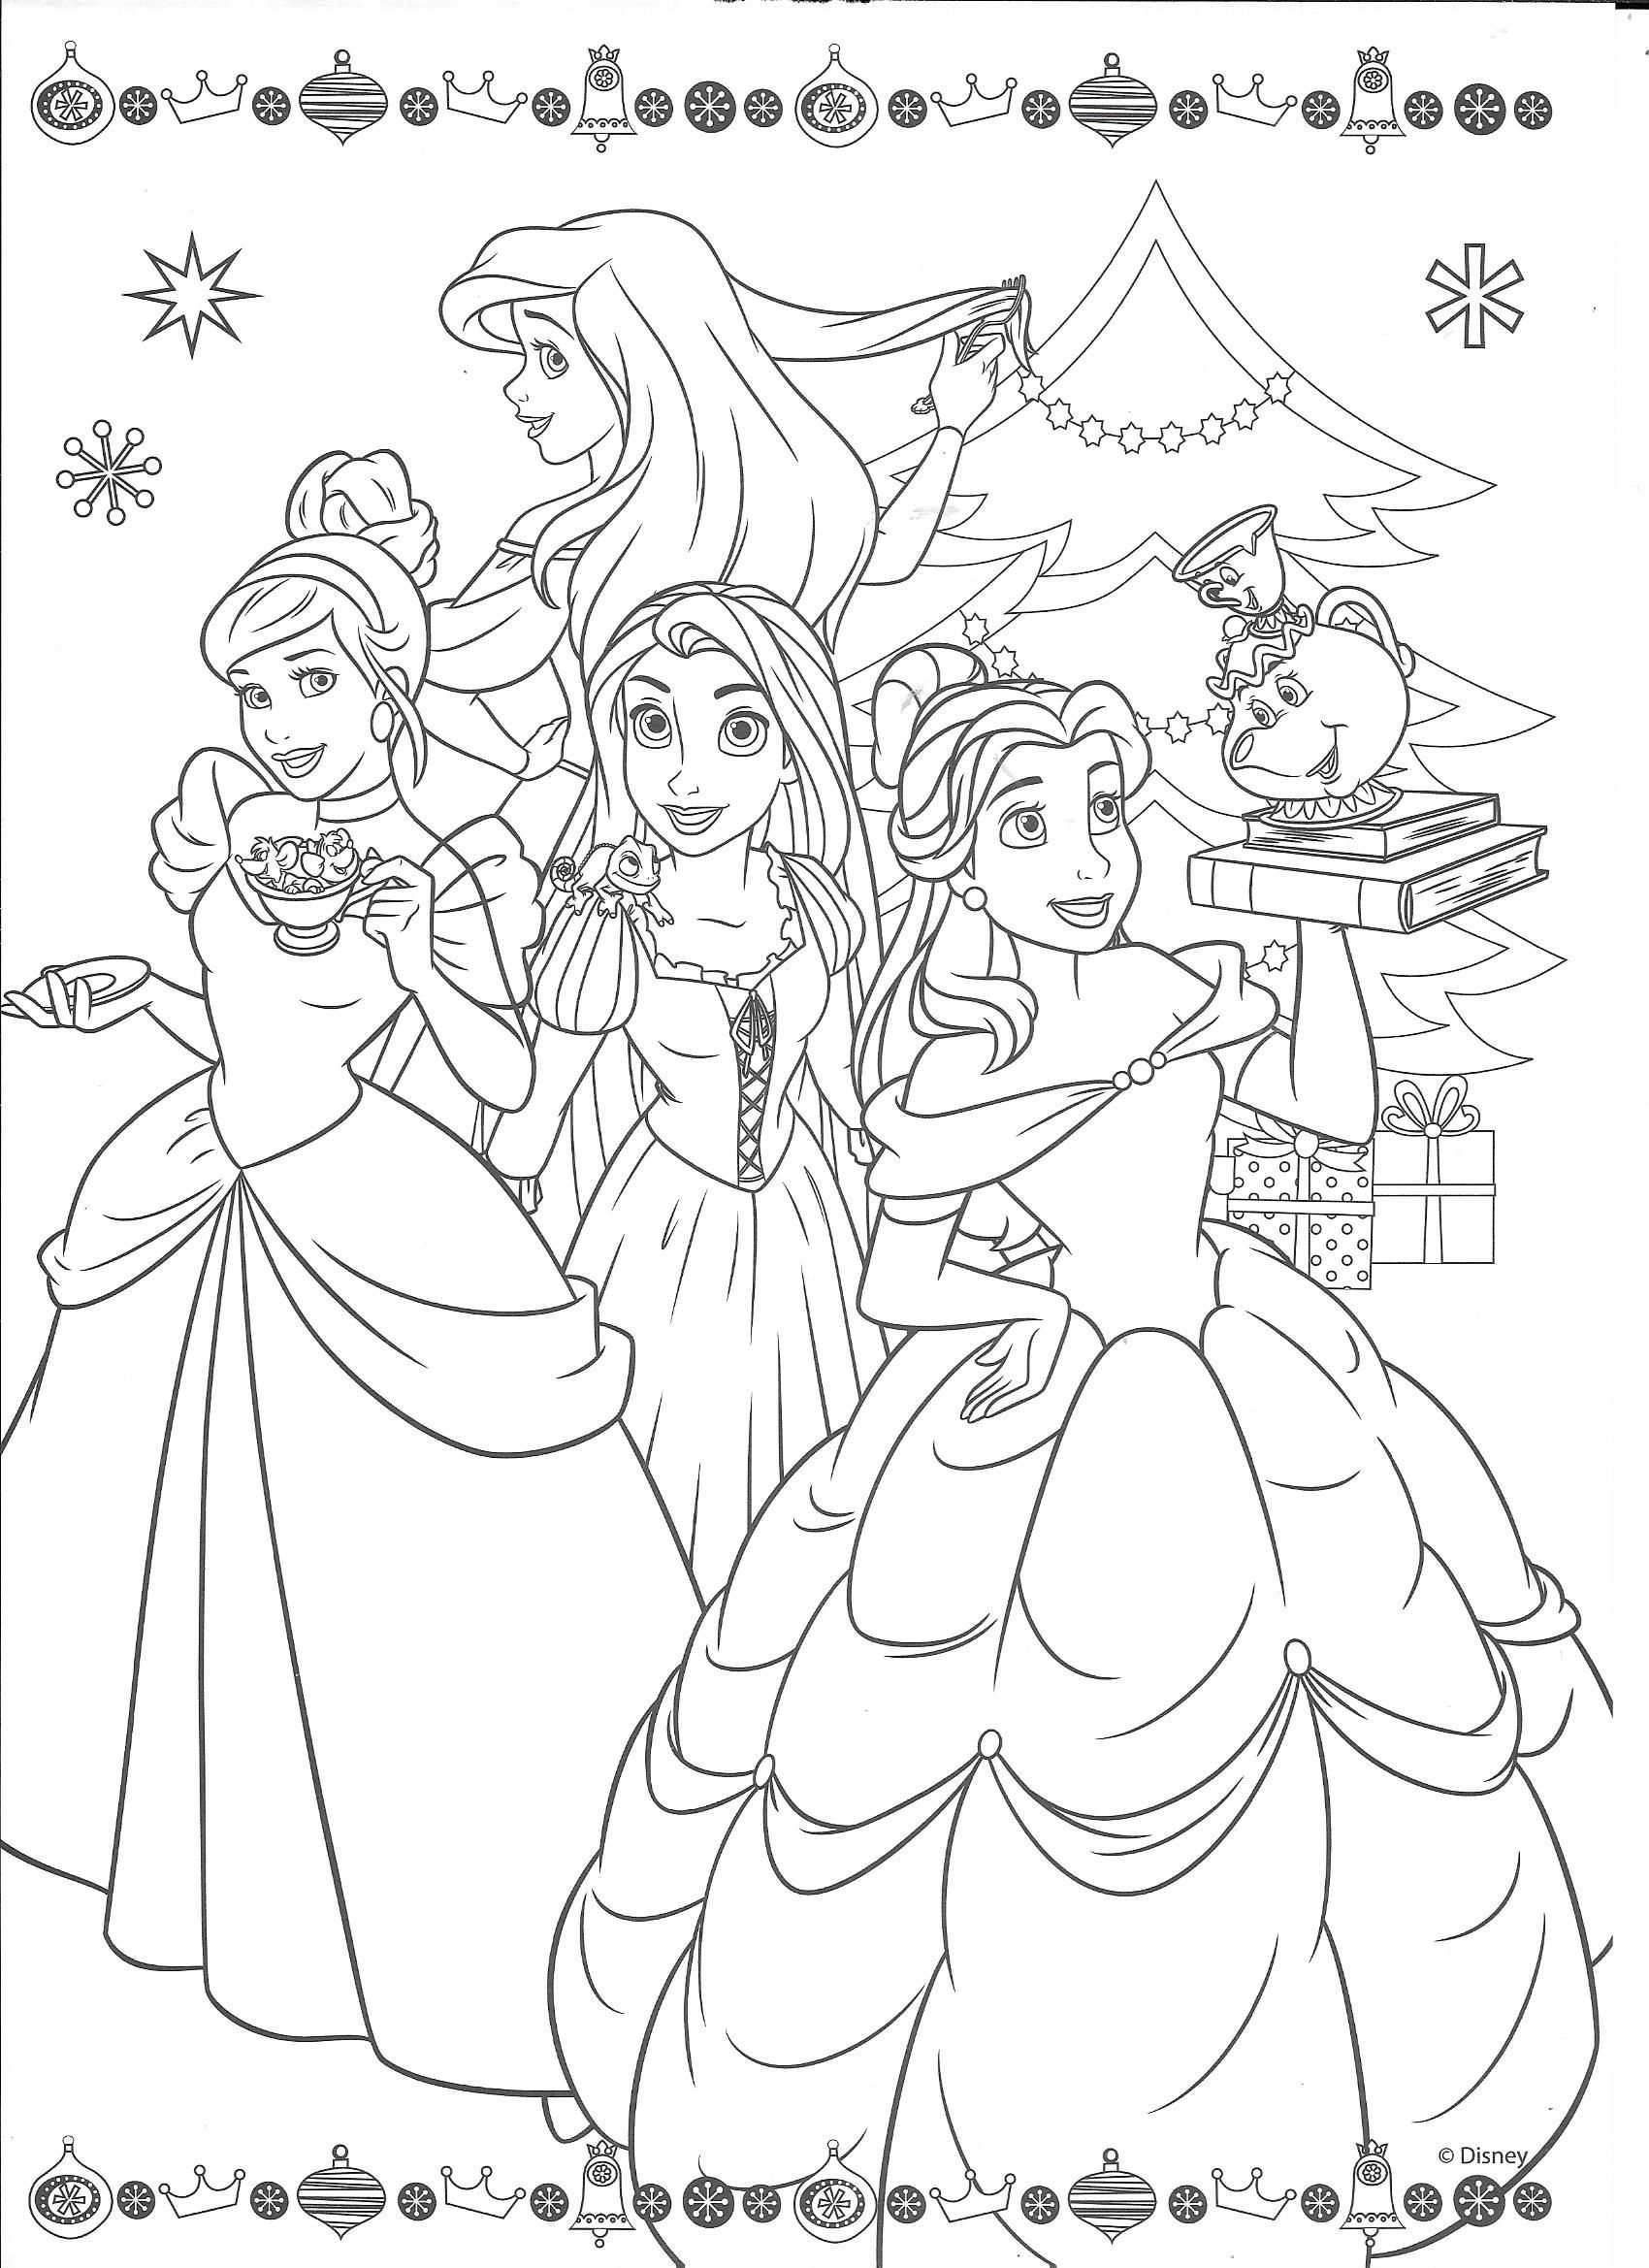 Pin By Tatyana Ratsyna On Coloring Pages Disney Princess Coloring Pages Princess Coloring Pages Disney Coloring Sheets